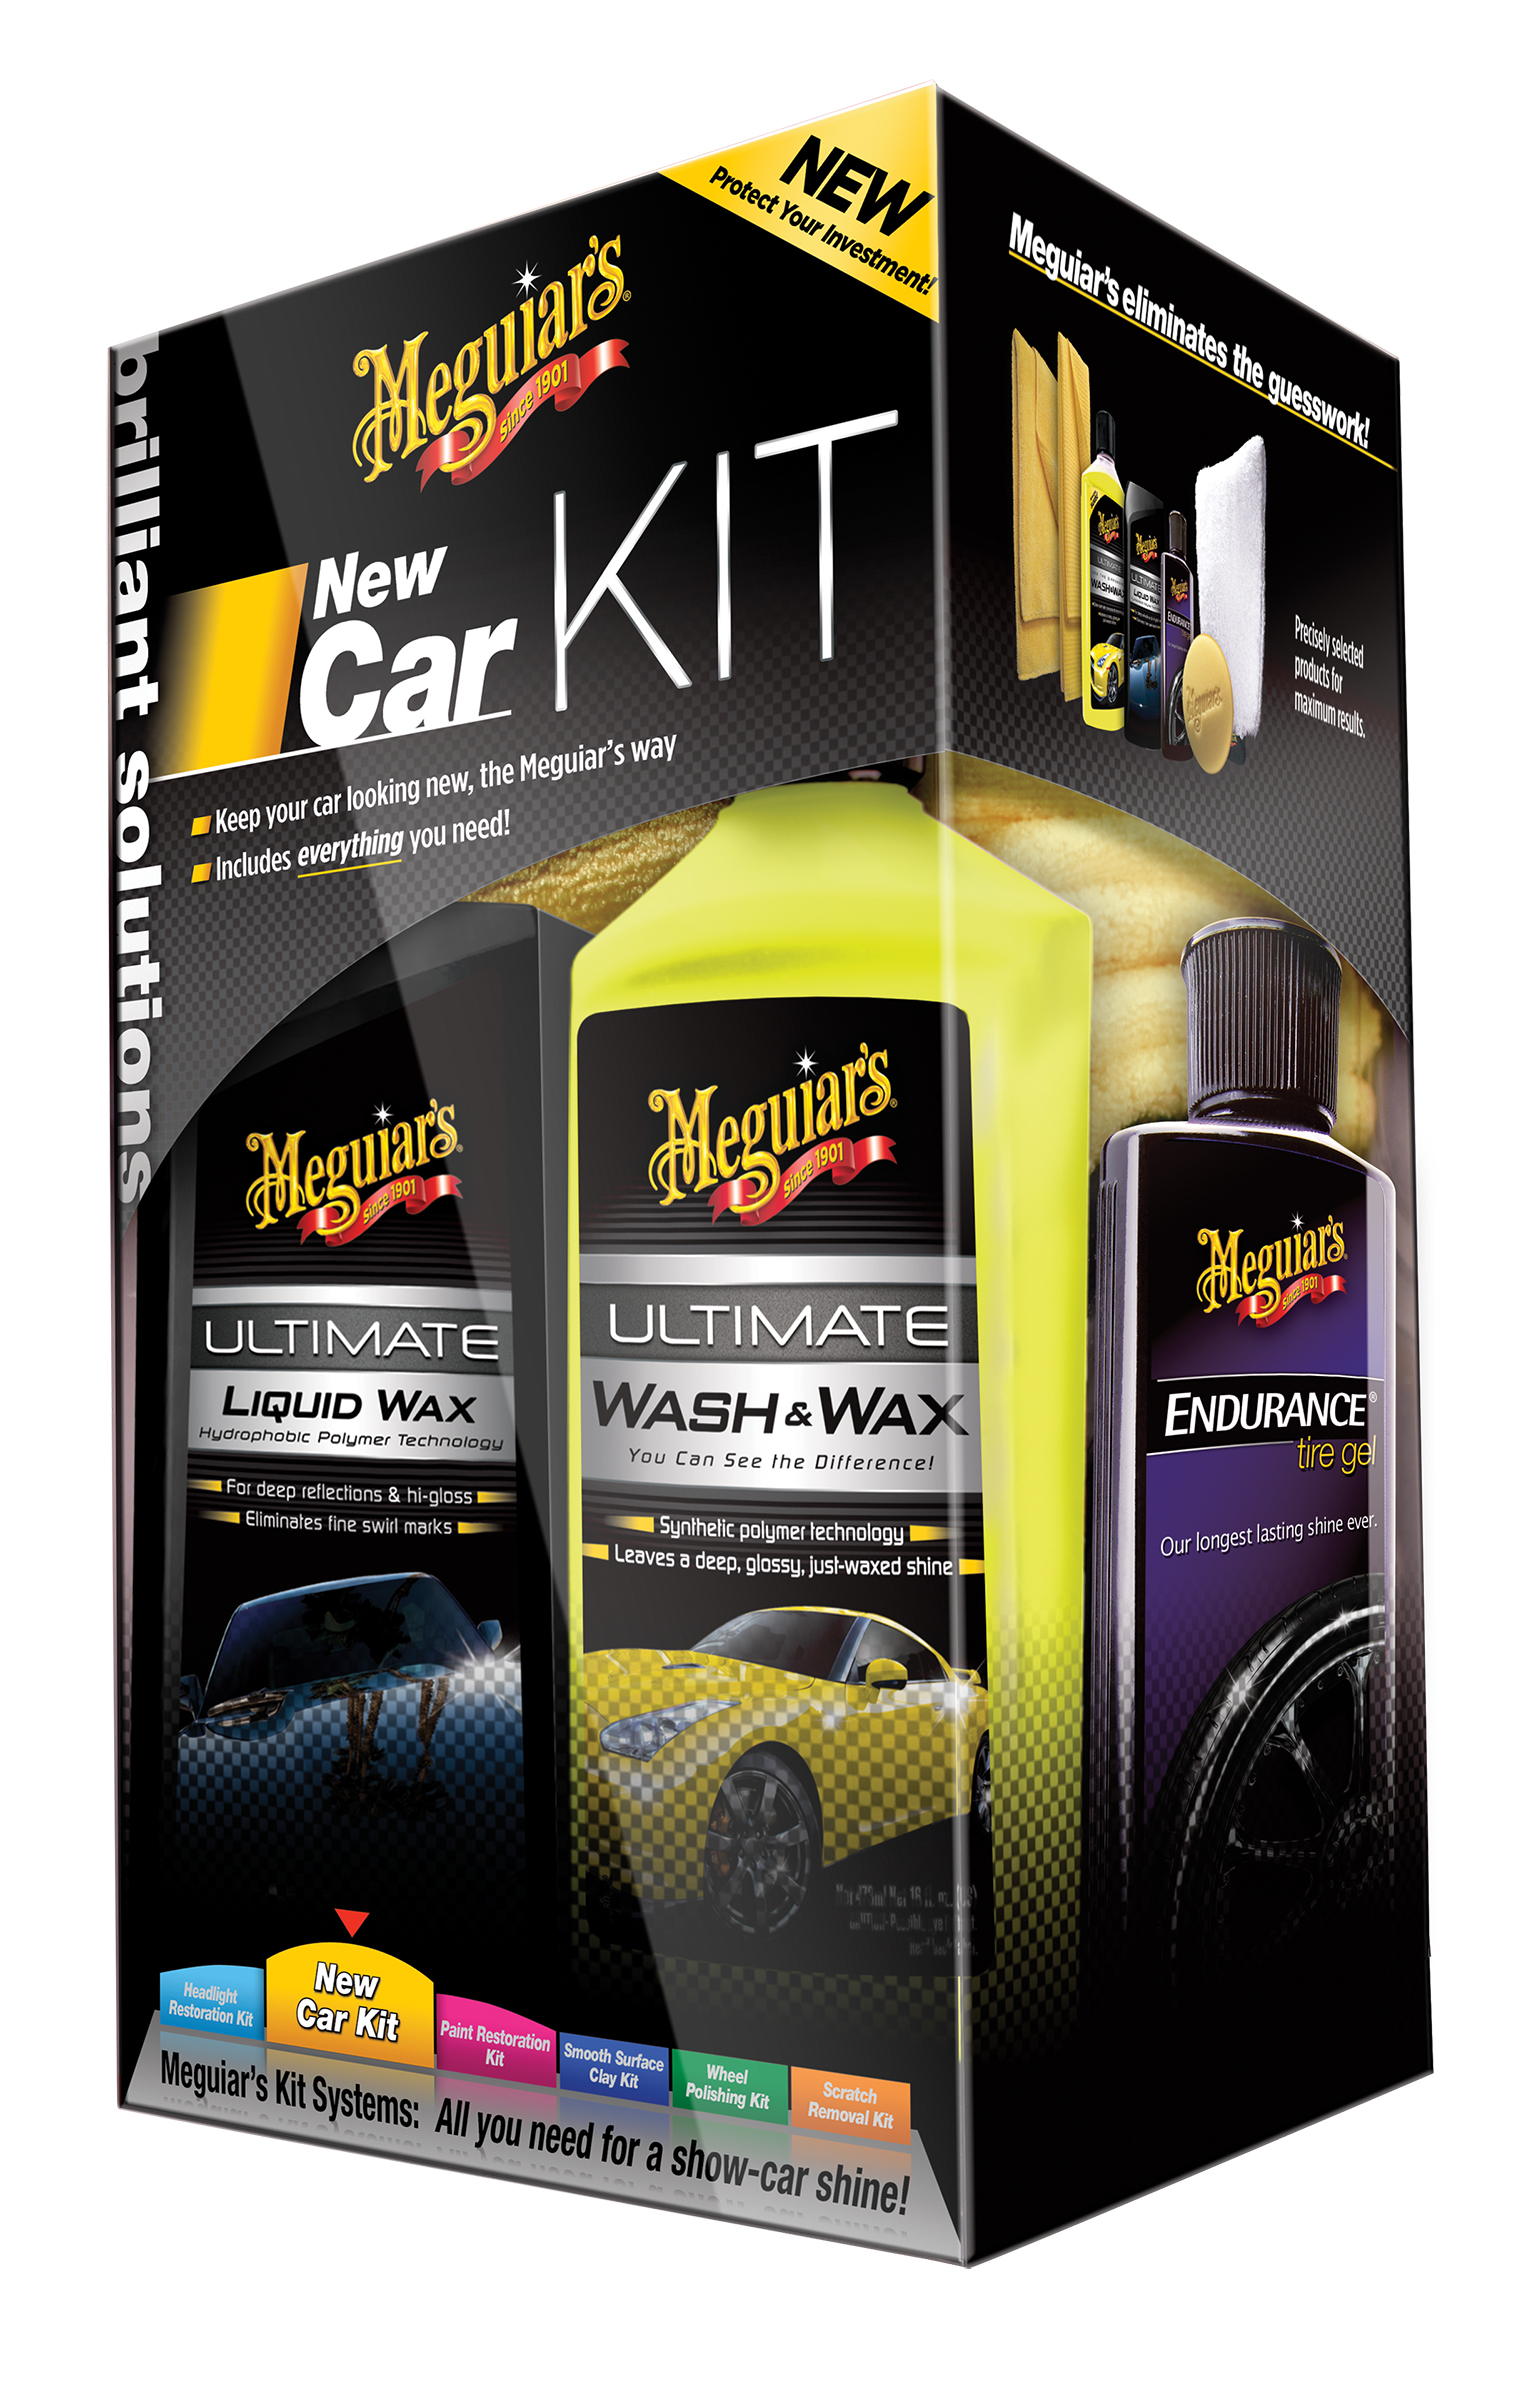 Meguiars New Car Kit G3200